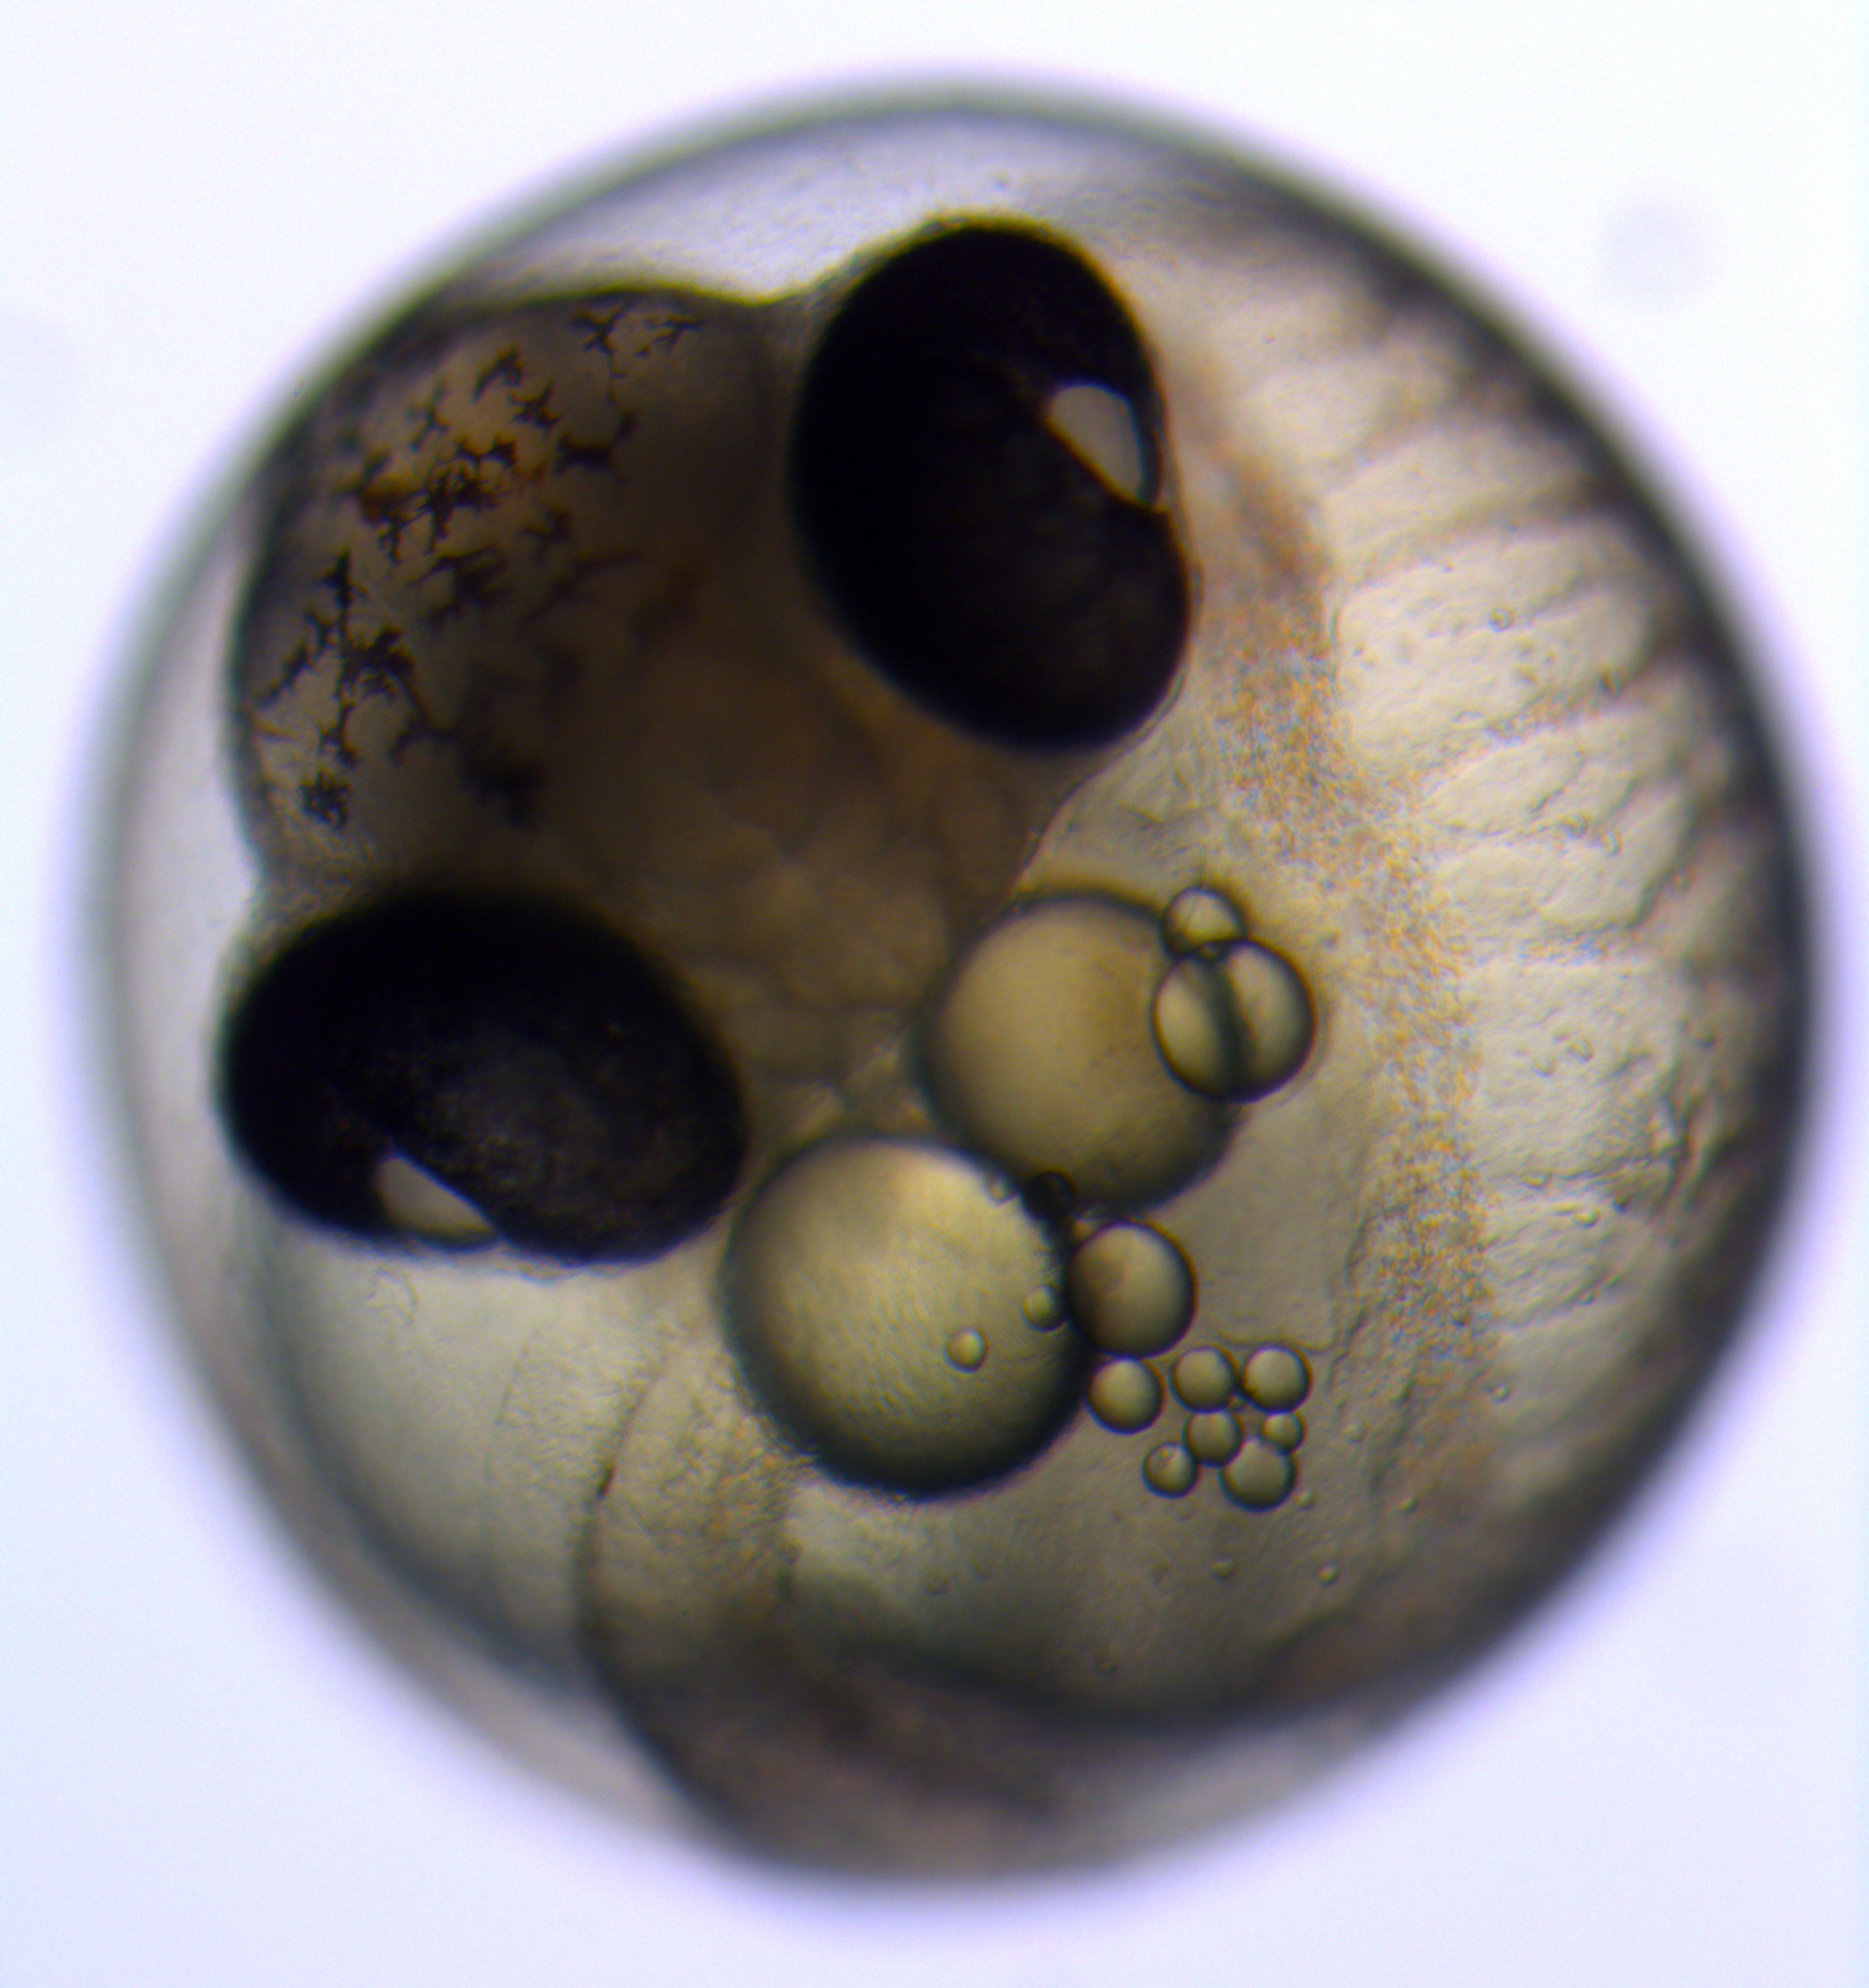 Three-spined stickleback embryo